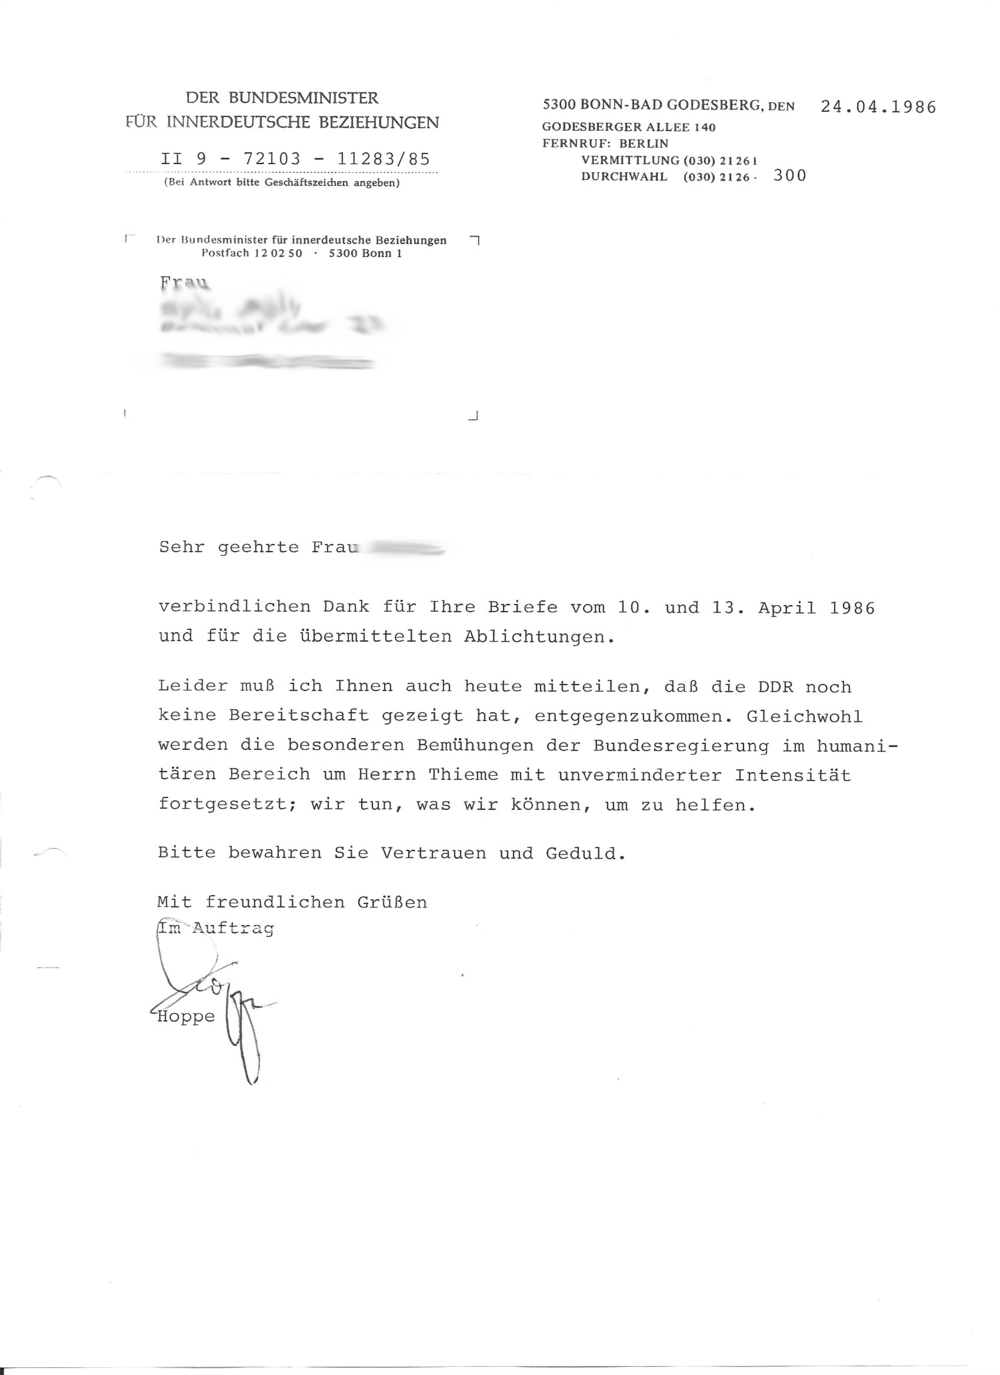 Ministe-Intra-German-Relations-letter-april.jpg